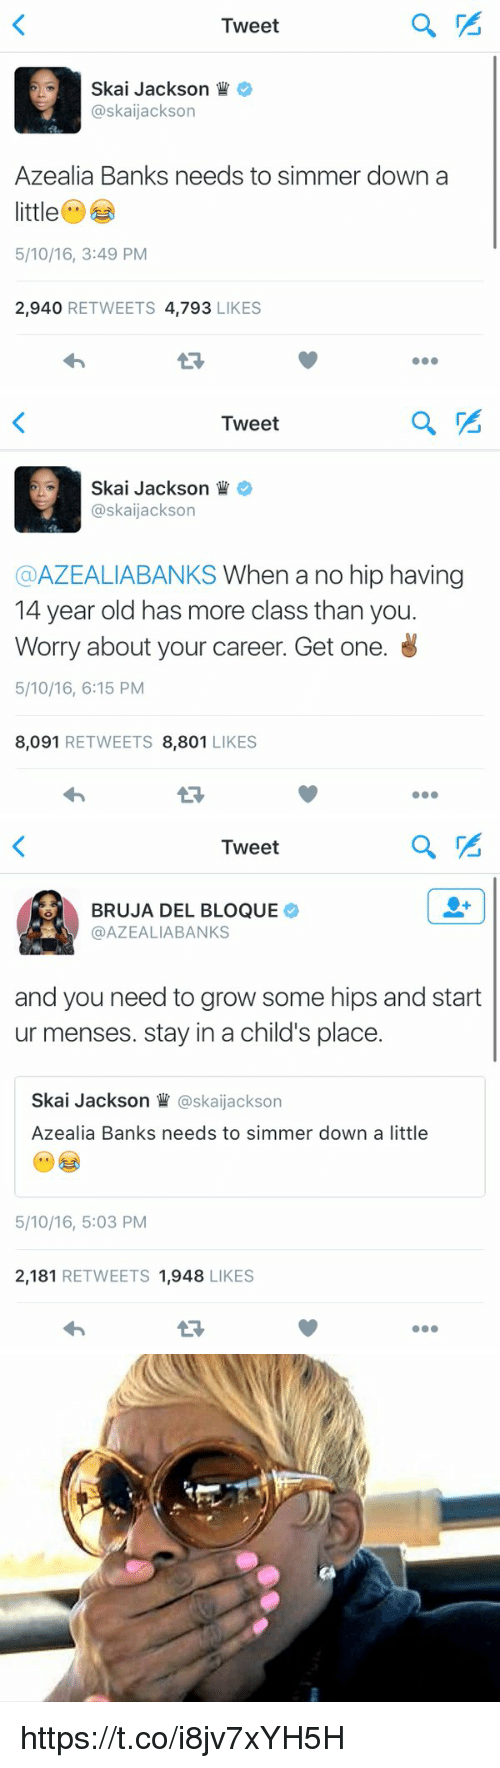 Funny, Bank, and Banks: Tweet  Skai Jackson  askaijackson  Azealia Banks needs to simmer down a  little  5/10/16, 3:49 PM  2,940  RETWEETS  4,793  LIKES   Tweet  Skai Jackson  askaijackson  @AZEALIABANKS When a no hip having  14 year old has more class than you.  Worry about your career. Get one.  5/10/16, 6:15 PM  8,091  RETWEETS 8,801  LIKES   Tweet  BRUJA DEL BLOQUE  AZEALIA BANKS  and you need to grow some hips and start  ur menses. stay in a child's place.  Skai Jackson  askaijackson  Azealia Banks needs to simmer down a little  5/10/16, 5:03 PM  2,181  RETWEETS 1,948  LIKES   us https://t.co/i8jv7xYH5H